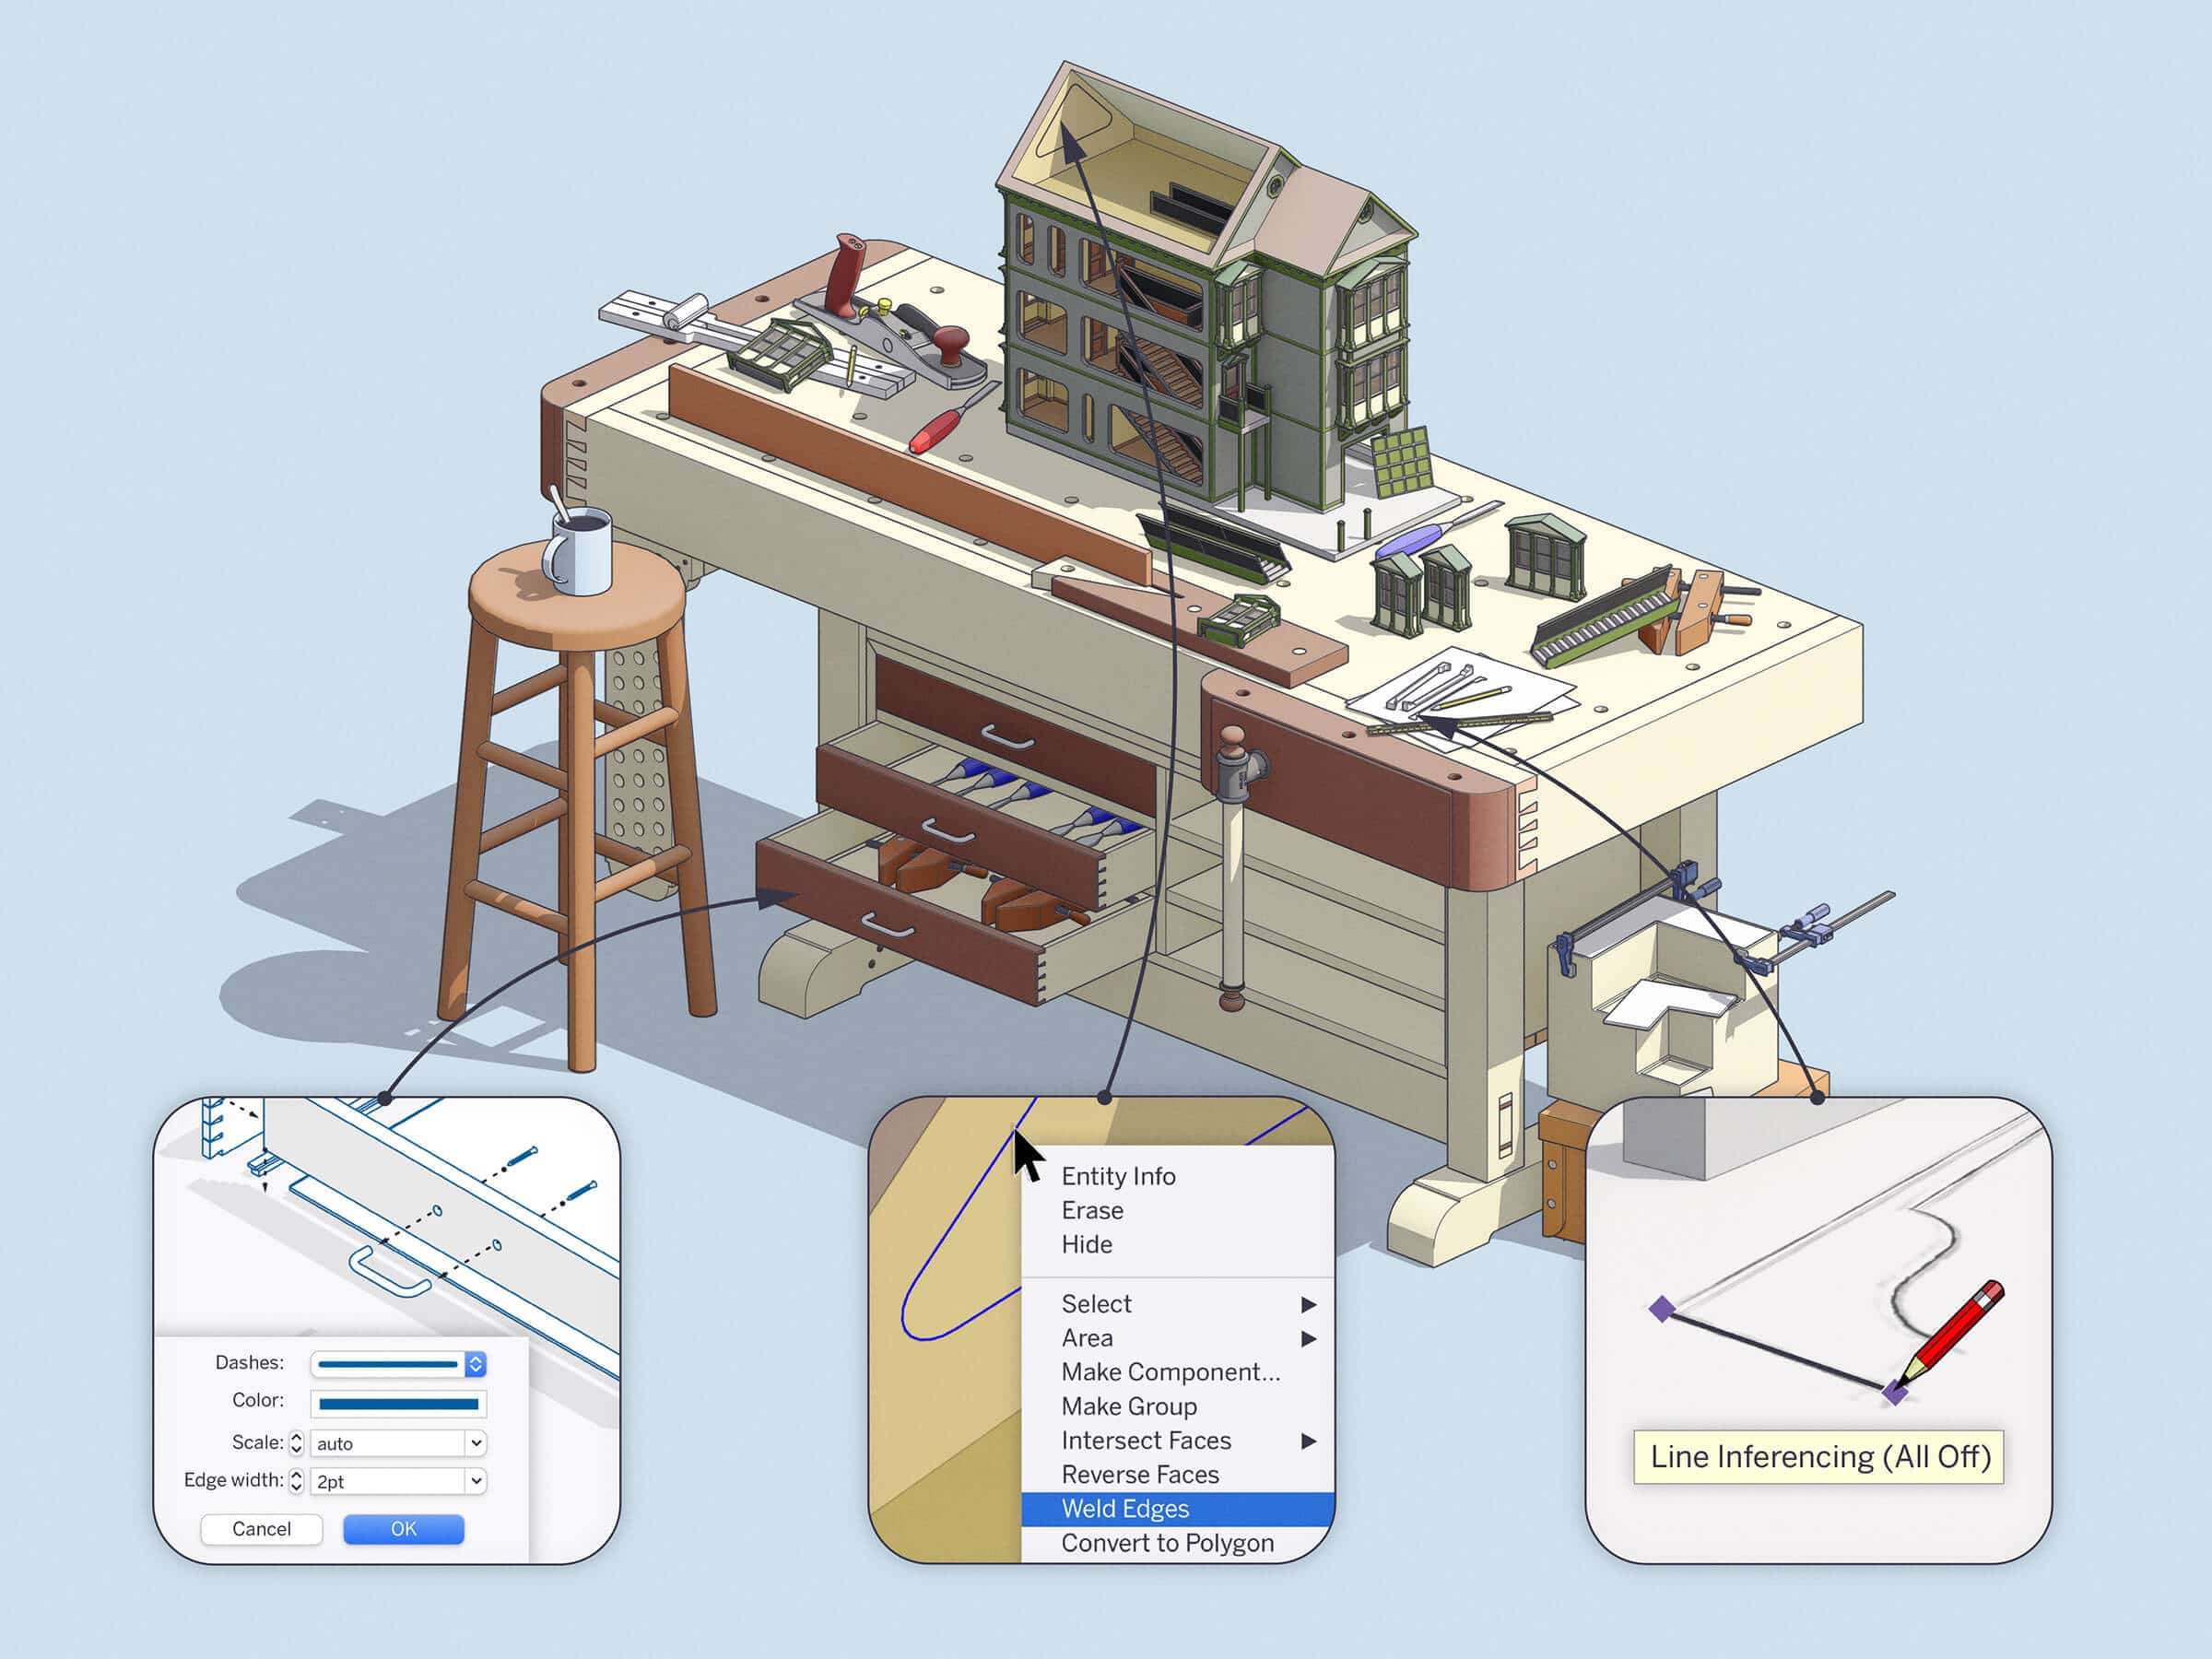 A fresh, new update for SketchUp 2020